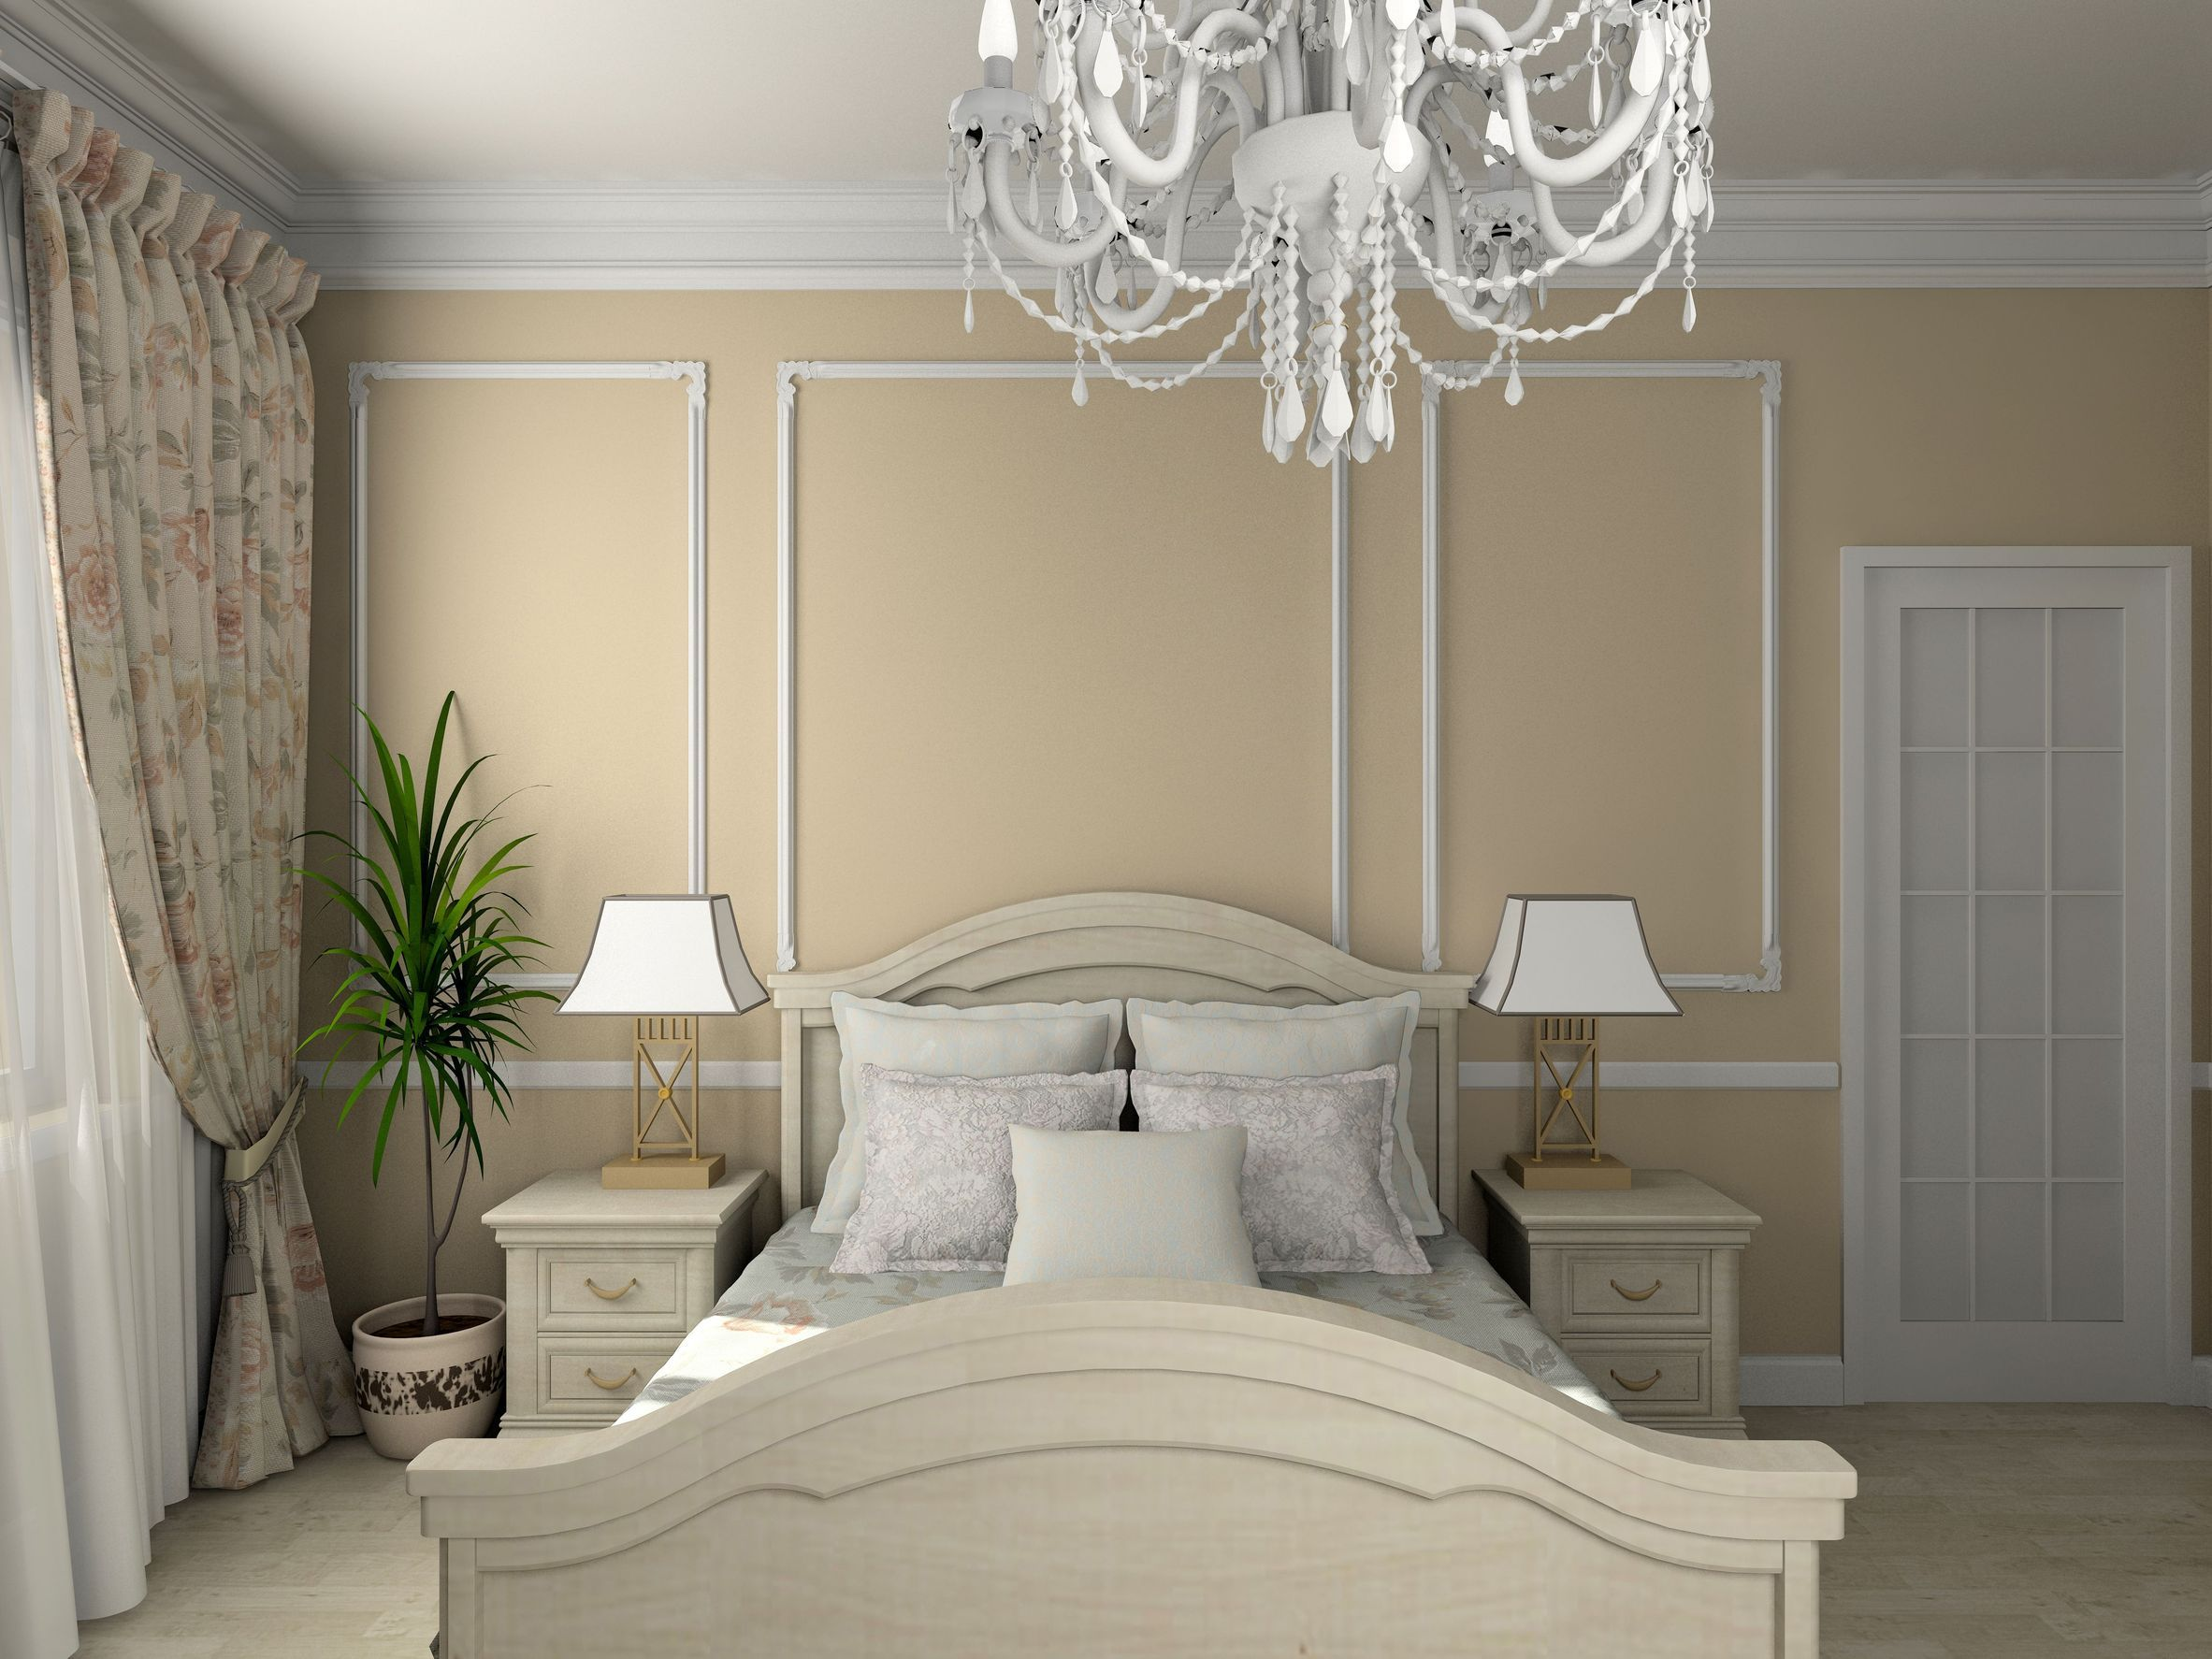 Calming Paint Colors For Bedroom   Http://www.amazadesign.com/